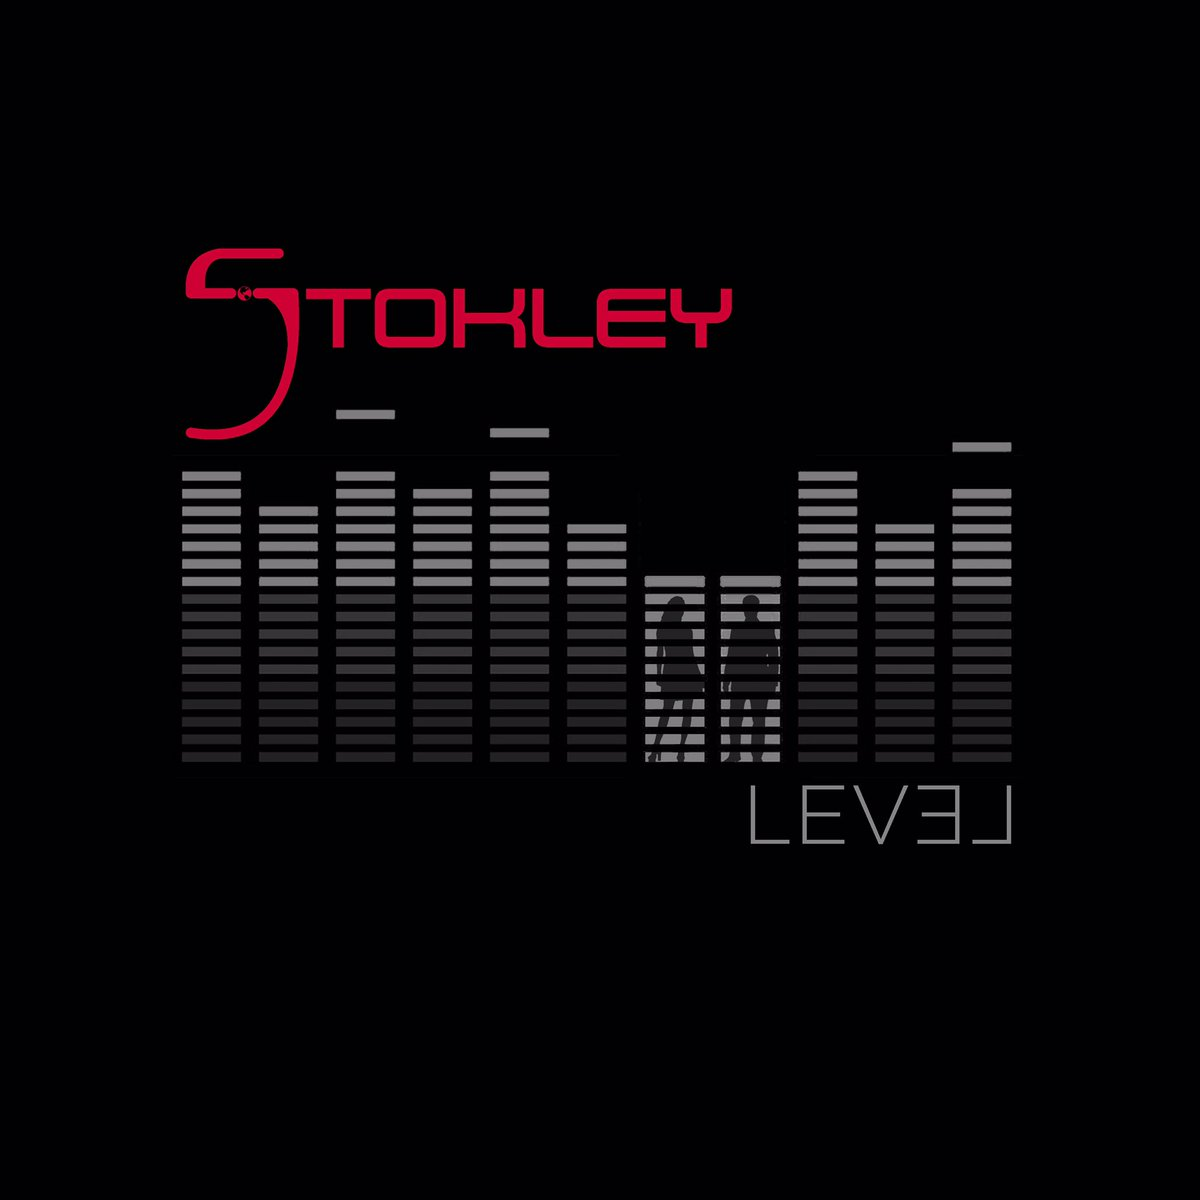 Stokely Williams Mint Condition Level